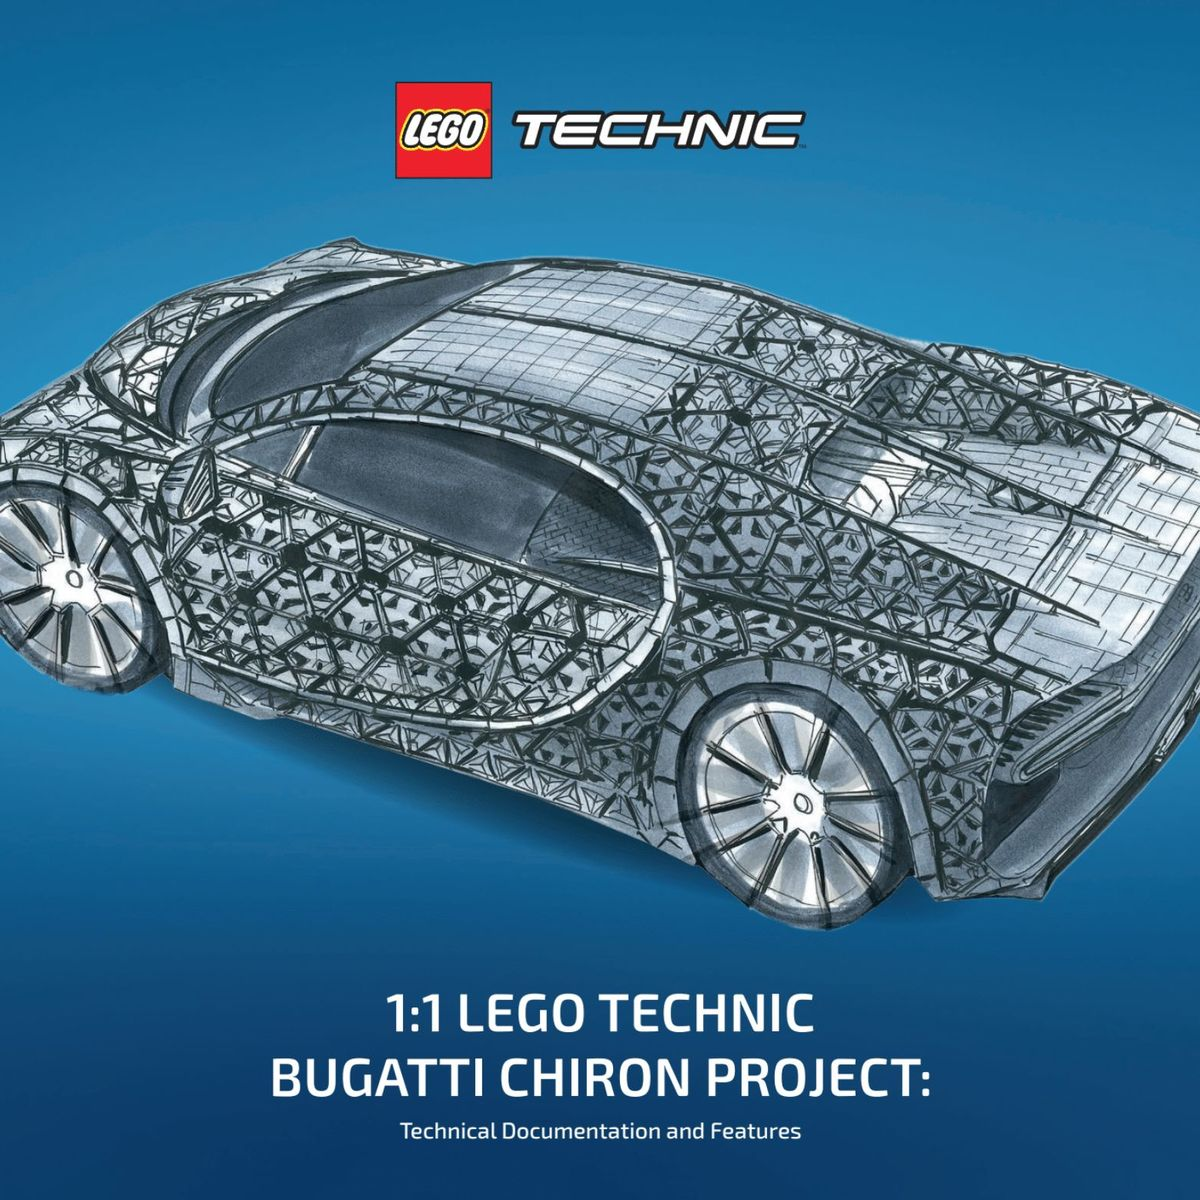 This full-size LEGO Bugatti Chiron actually runs and drives